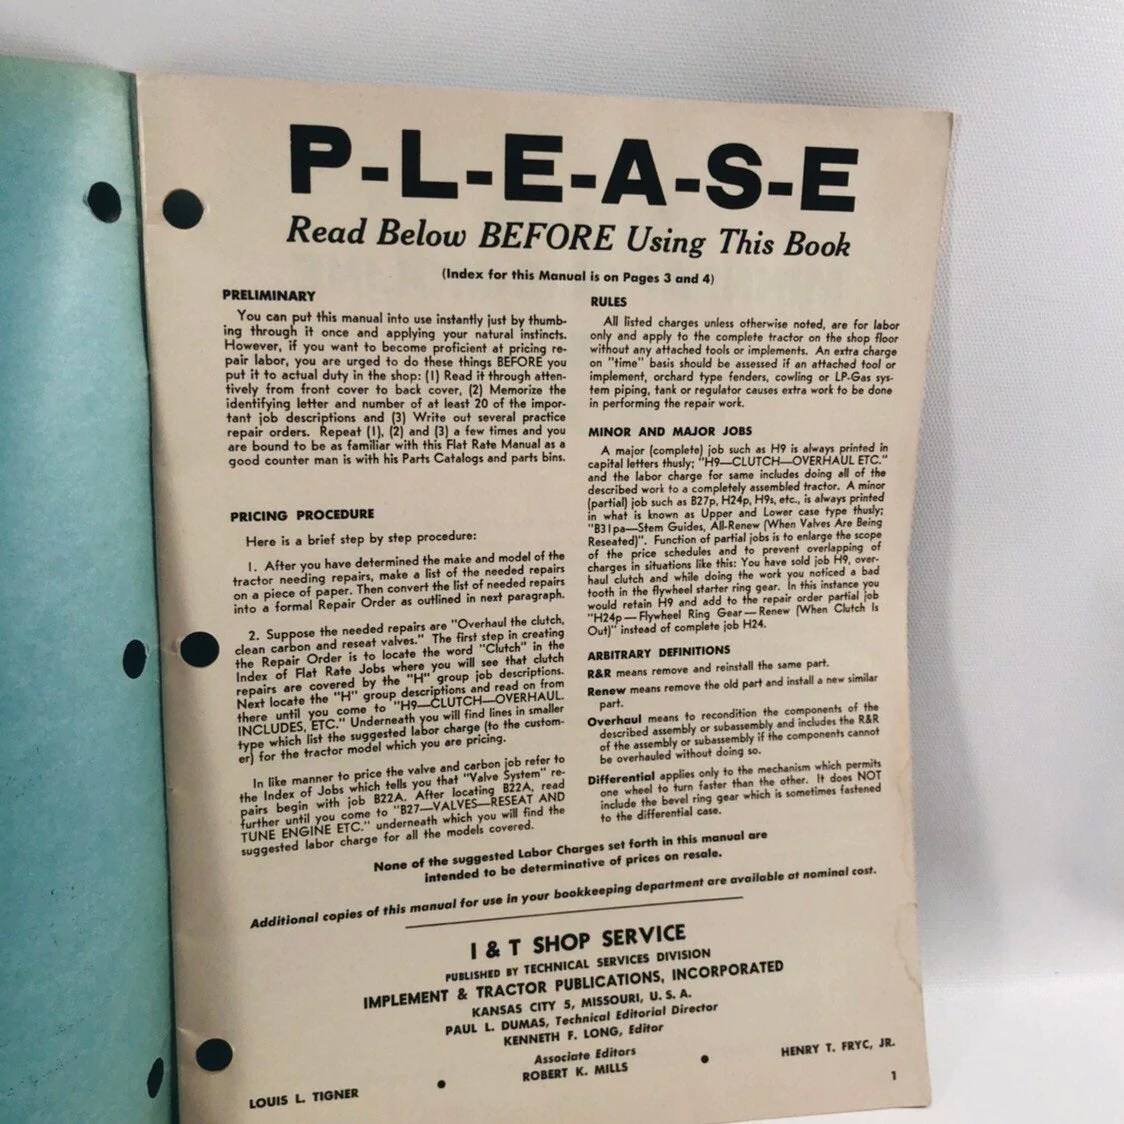 hight resolution of i t shop service flat rate manual no mm 9 minneapolis moline 1959